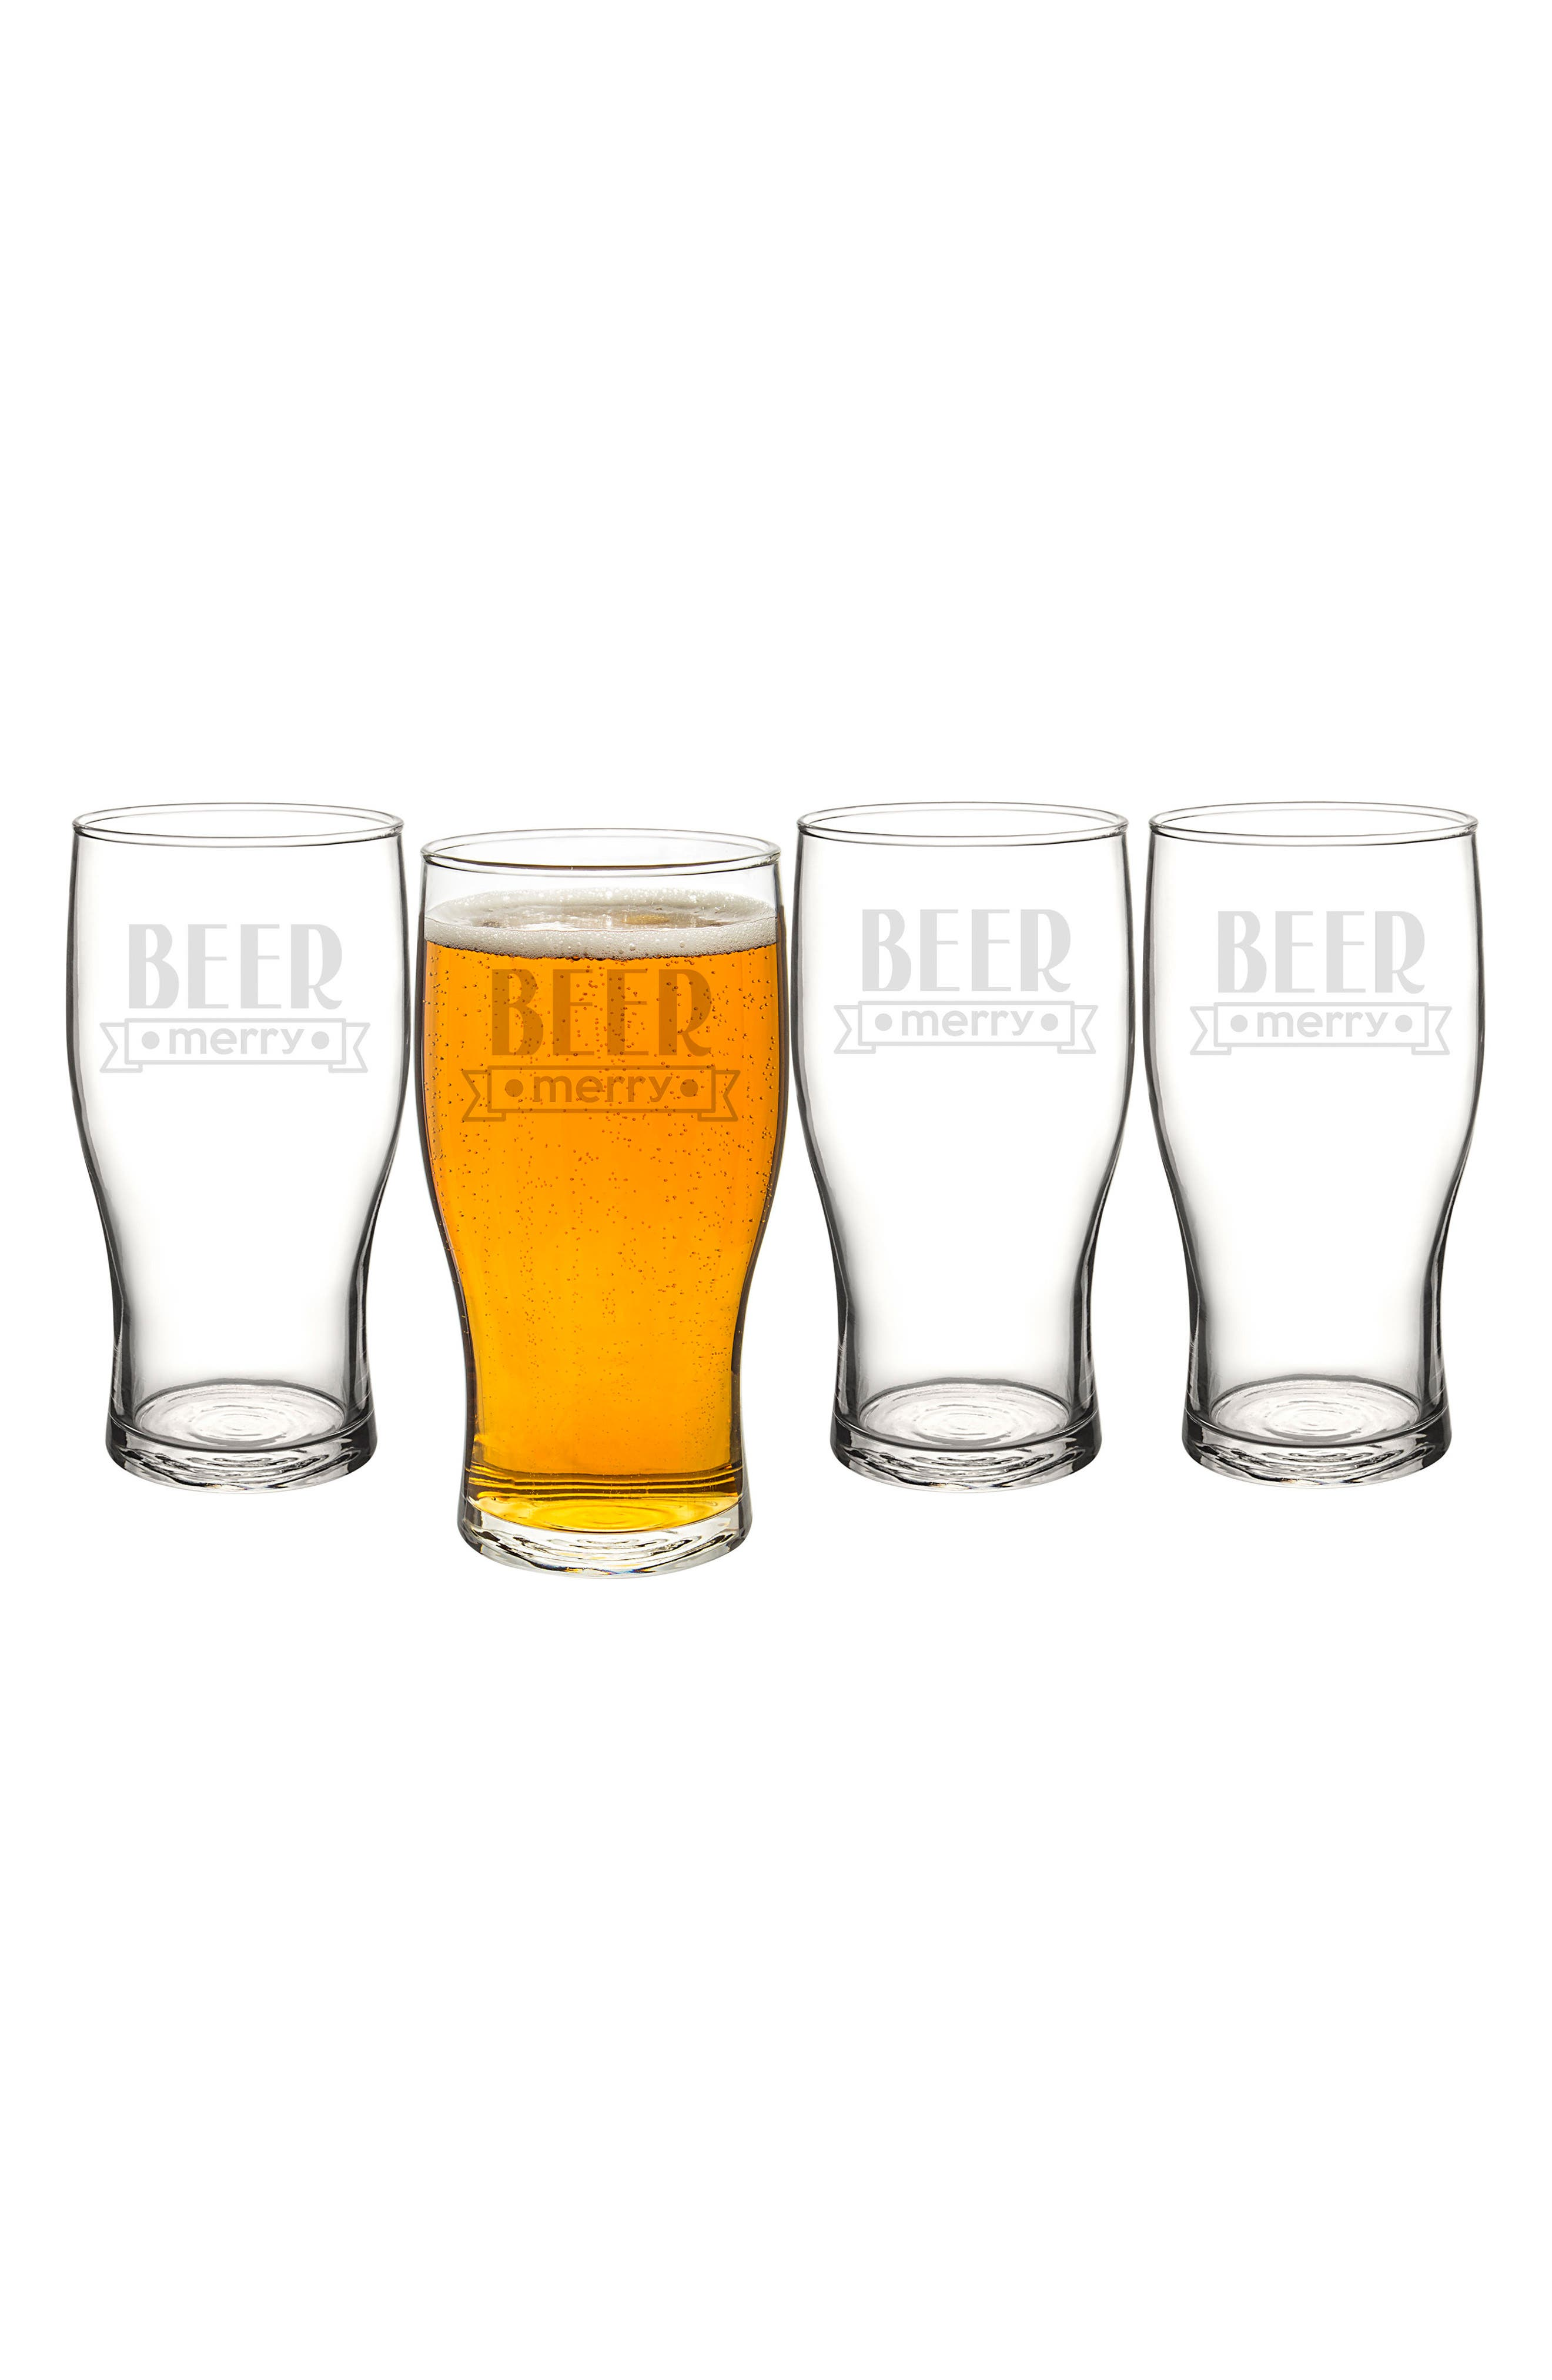 Beer Merry Set of 4 Pilsner Glasses,                             Main thumbnail 1, color,                             CLEAR